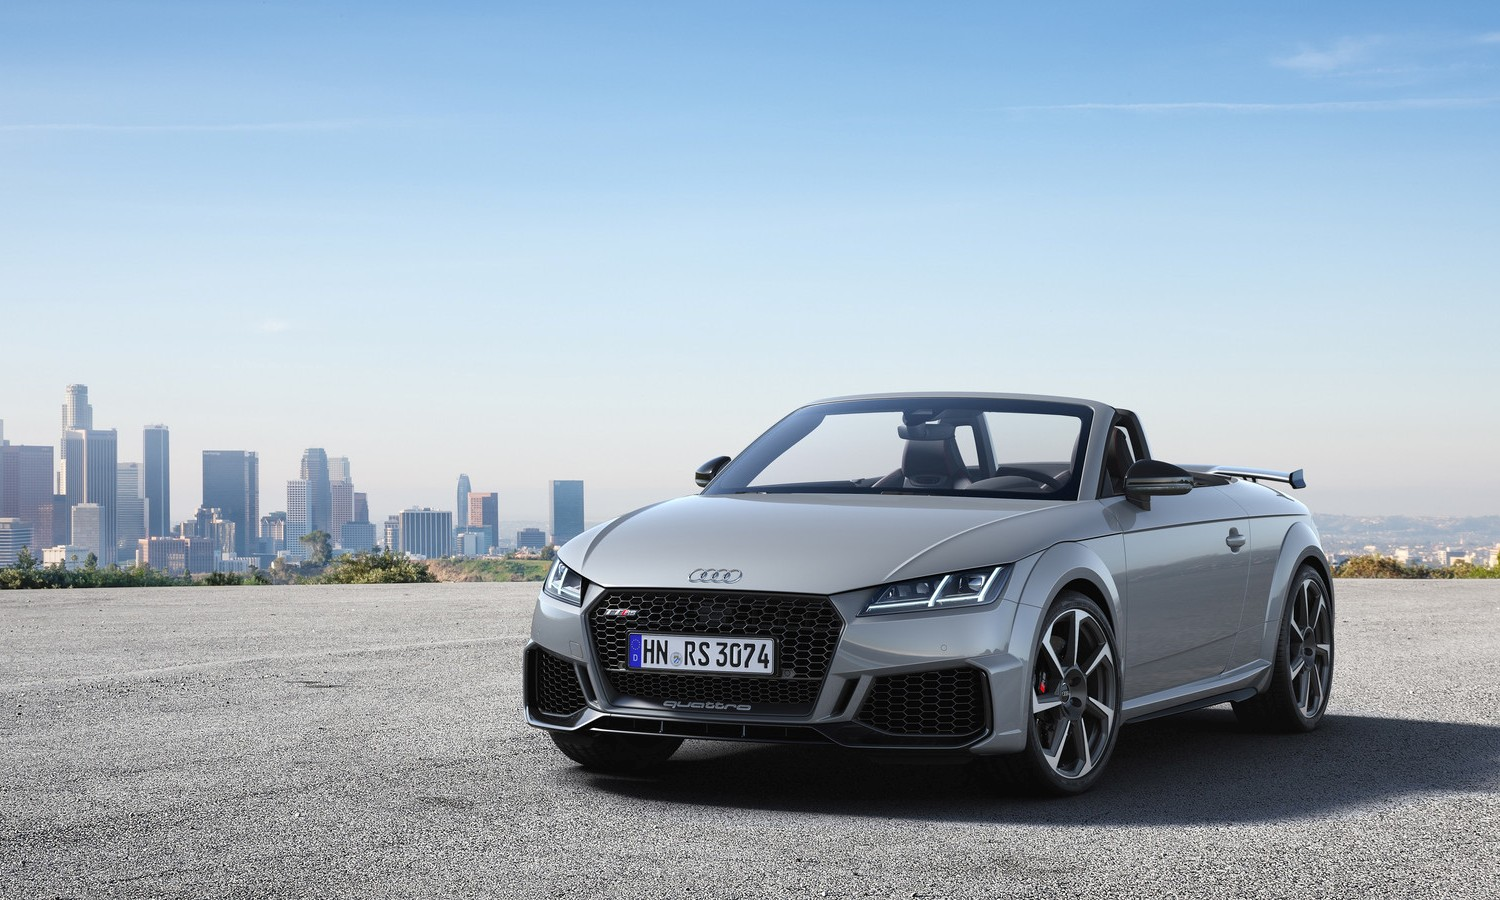 2020 Audi Tt Rs Price, Design and Review